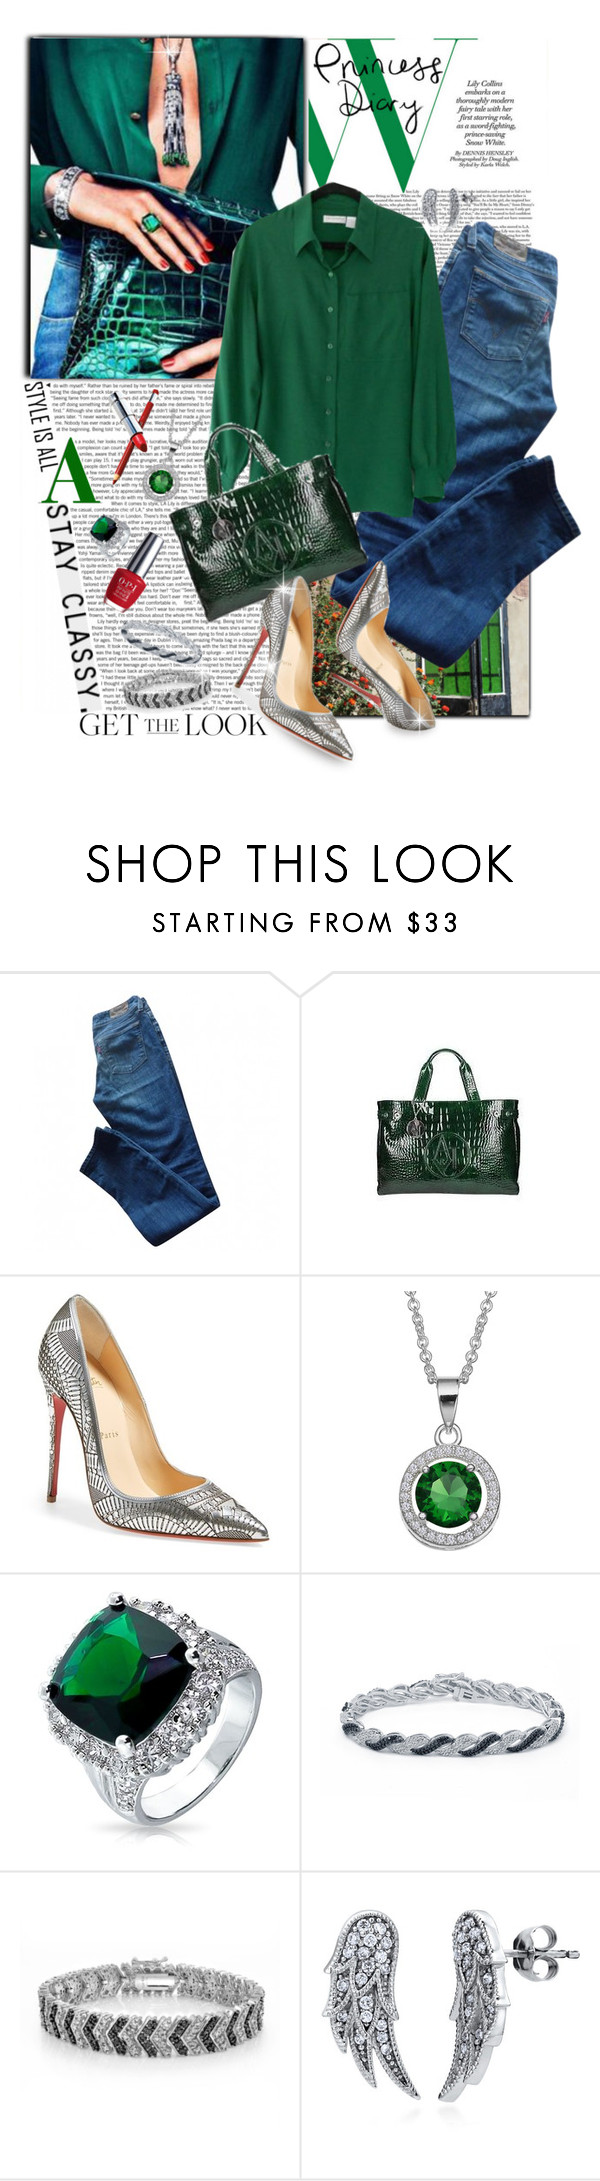 """""""Emeralds, Diamonds and Denim"""" by shortyluv718 ❤ liked on Polyvore featuring Levi's, Giorgio Armani, Christian Louboutin, Bling Jewelry, DB Designs, BERRICLE and OPI"""